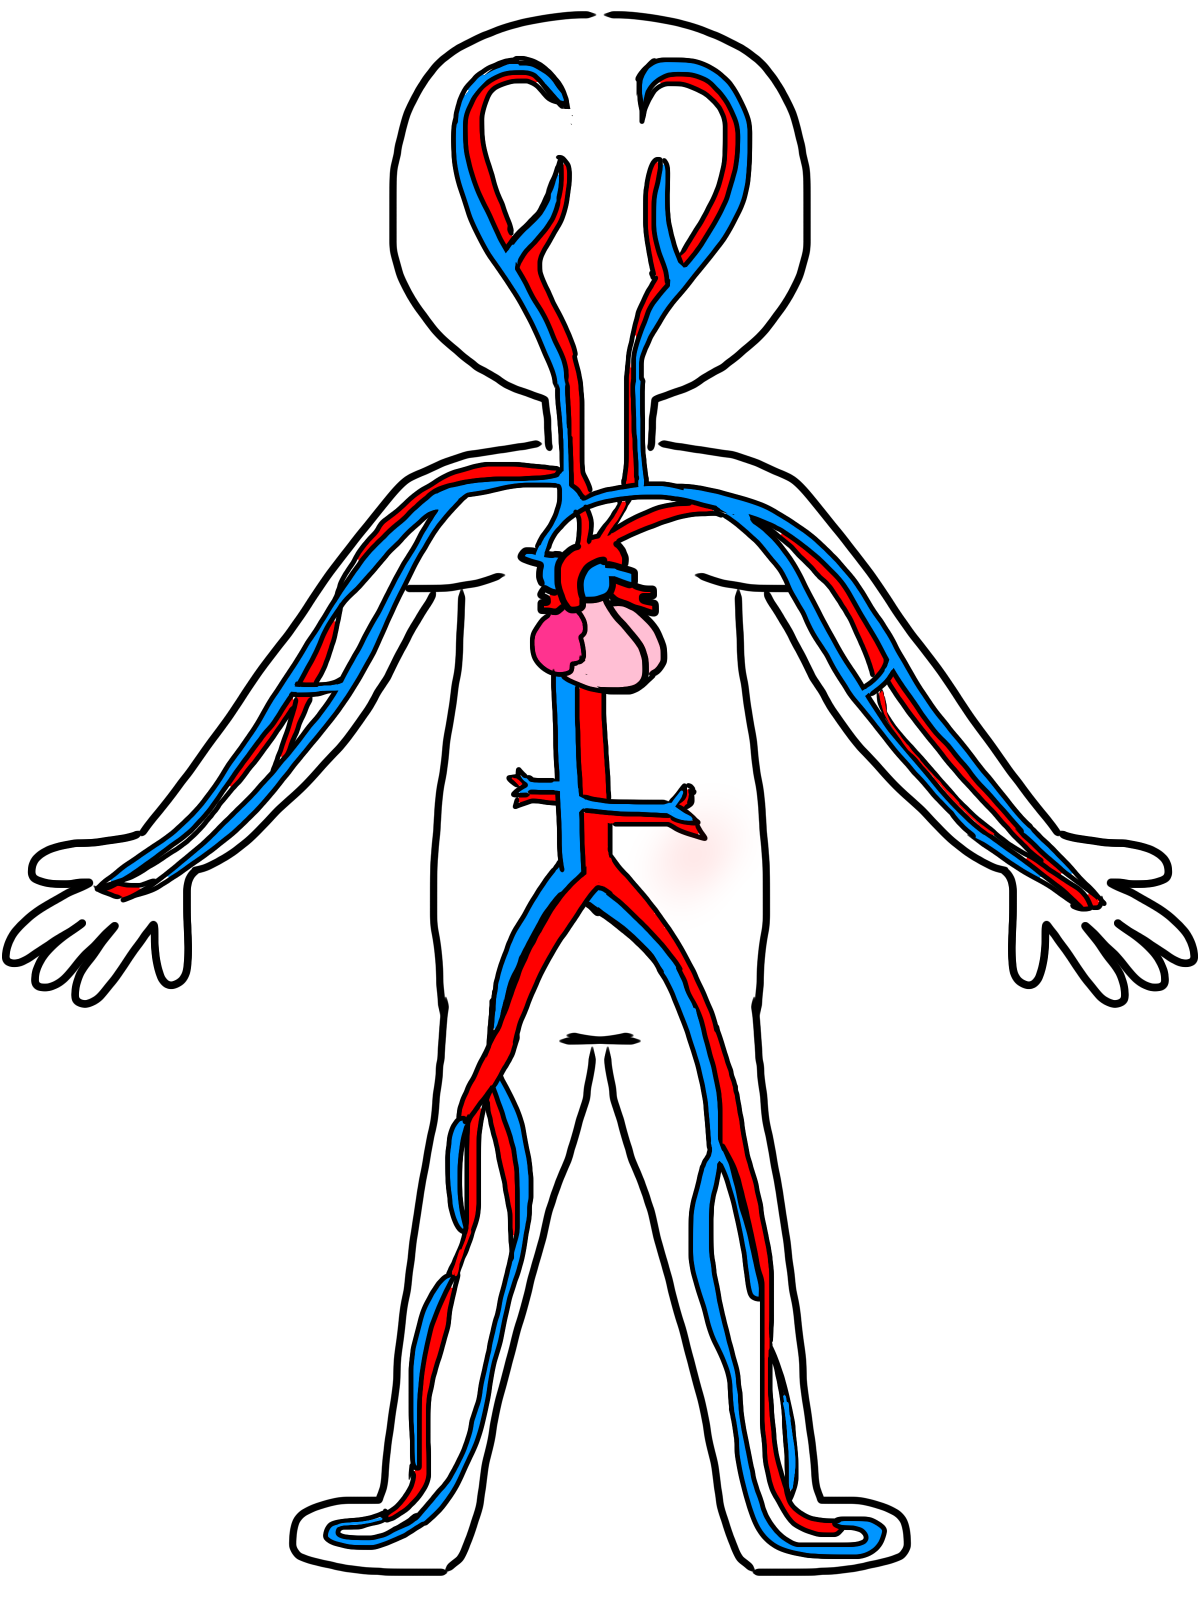 Circulatory System Transparent Pic